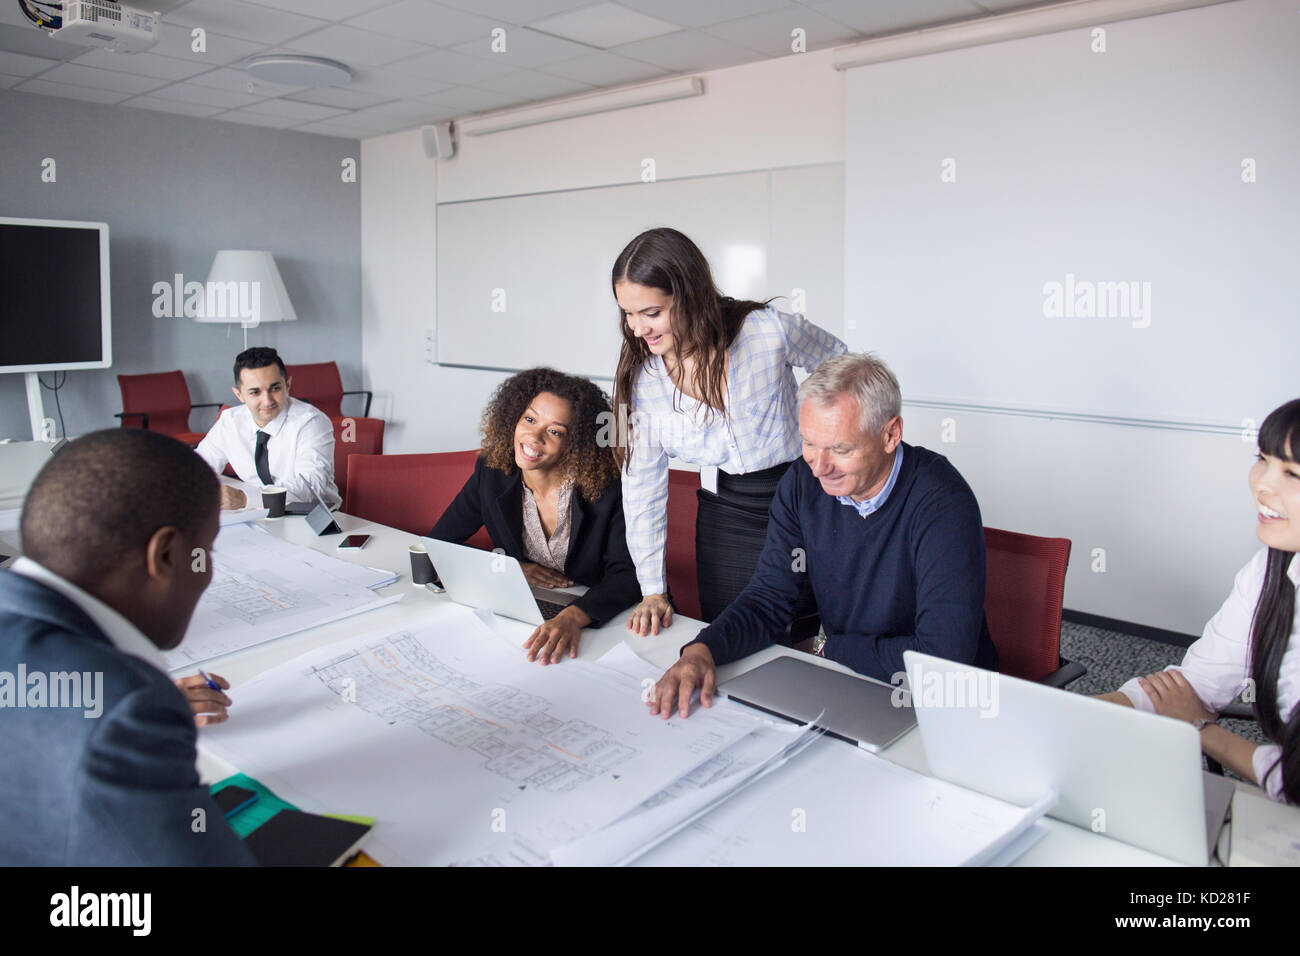 Team of architects and project managers working in office - Stock Image